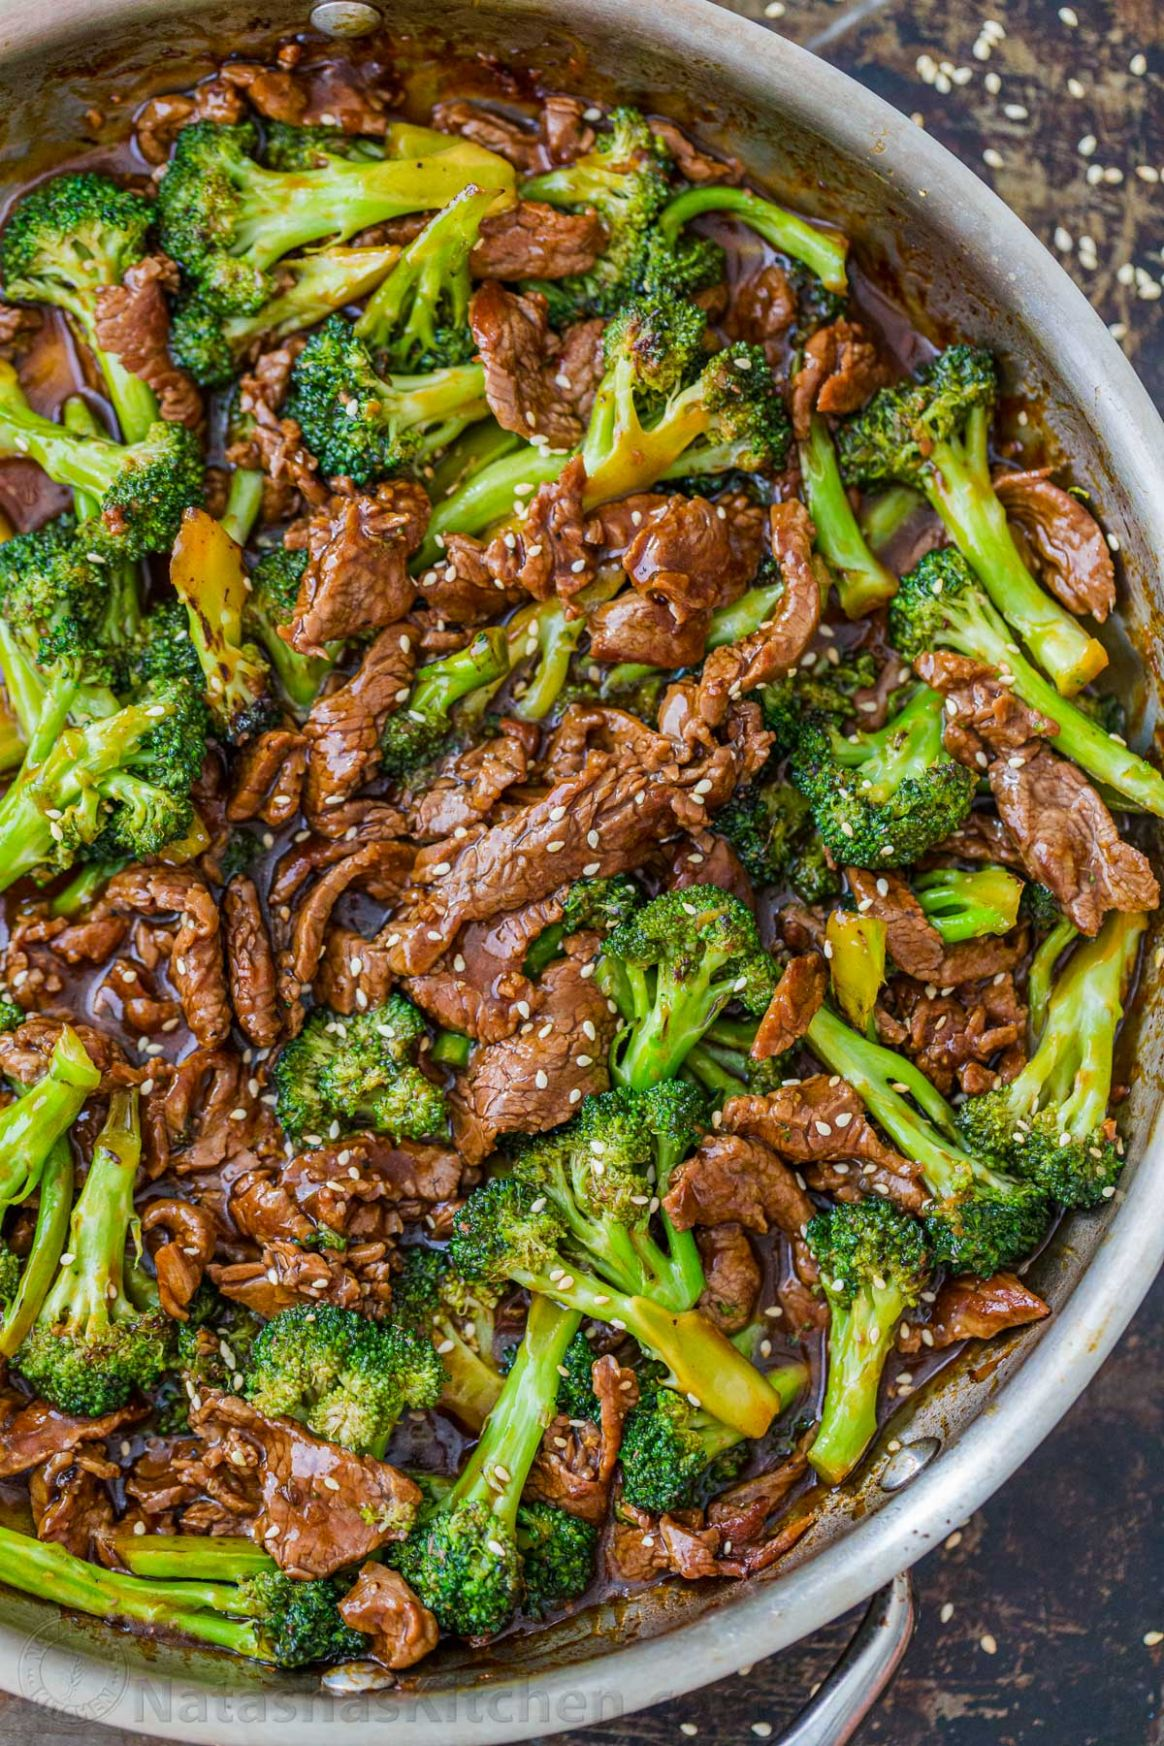 Beef and Broccoli Recipe - Recipes Beef And Broccoli Stir Fry